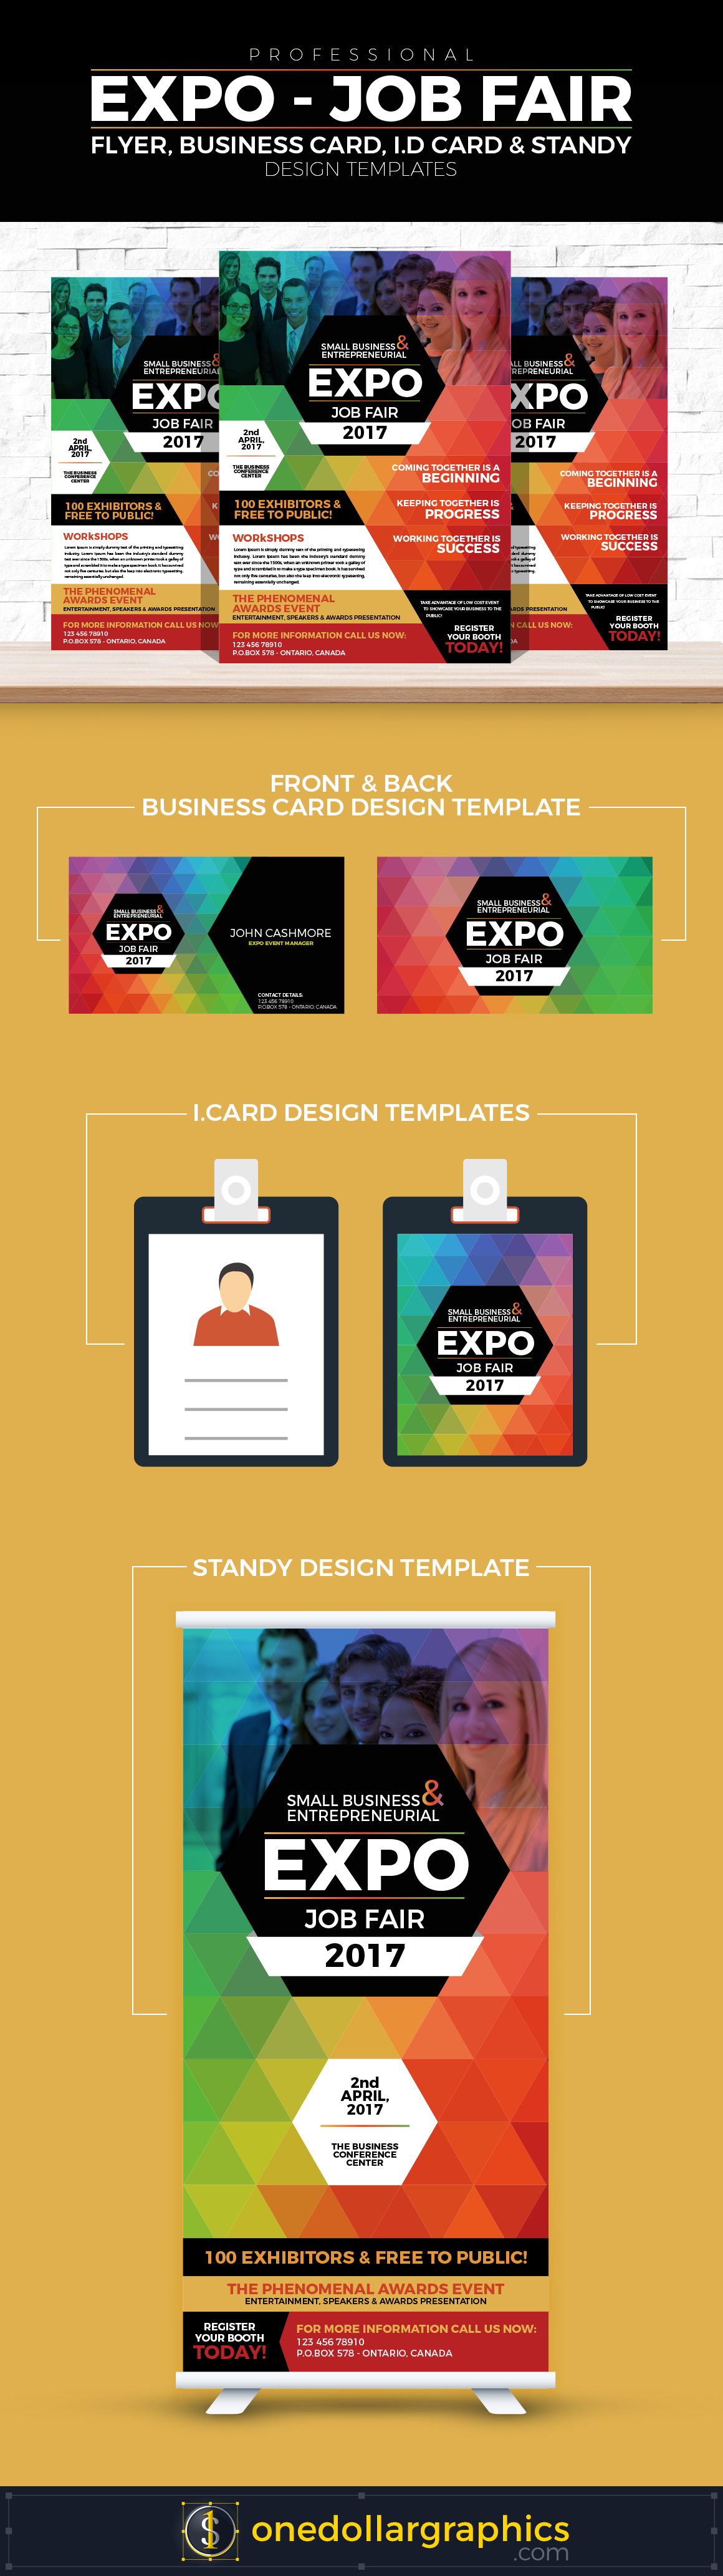 professional job expo job fair flyer business card i d card buy the best graphic resources of professional expo job fair flyer business card i d card standy design templates these design templates helps the